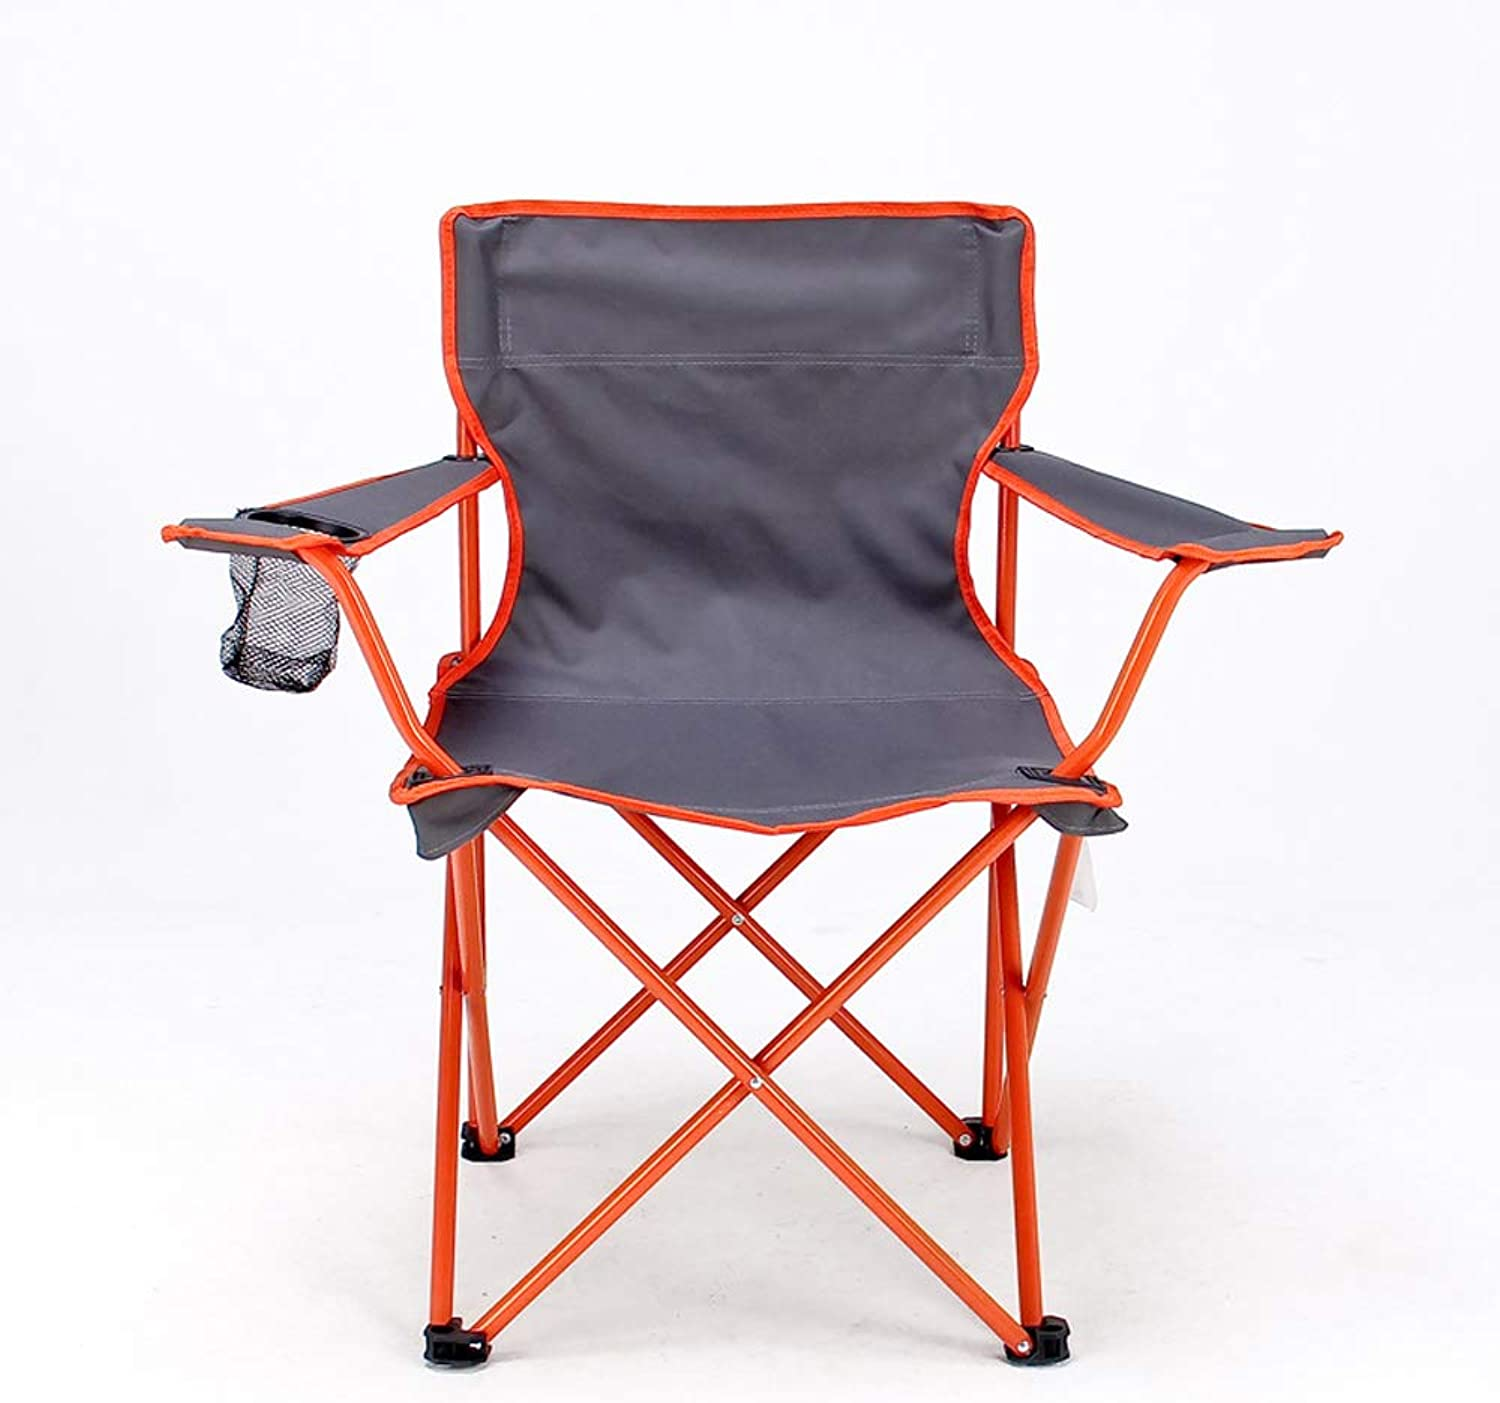 Mountaineering Leisure Camp Quad Chair with Cup Holder,orange